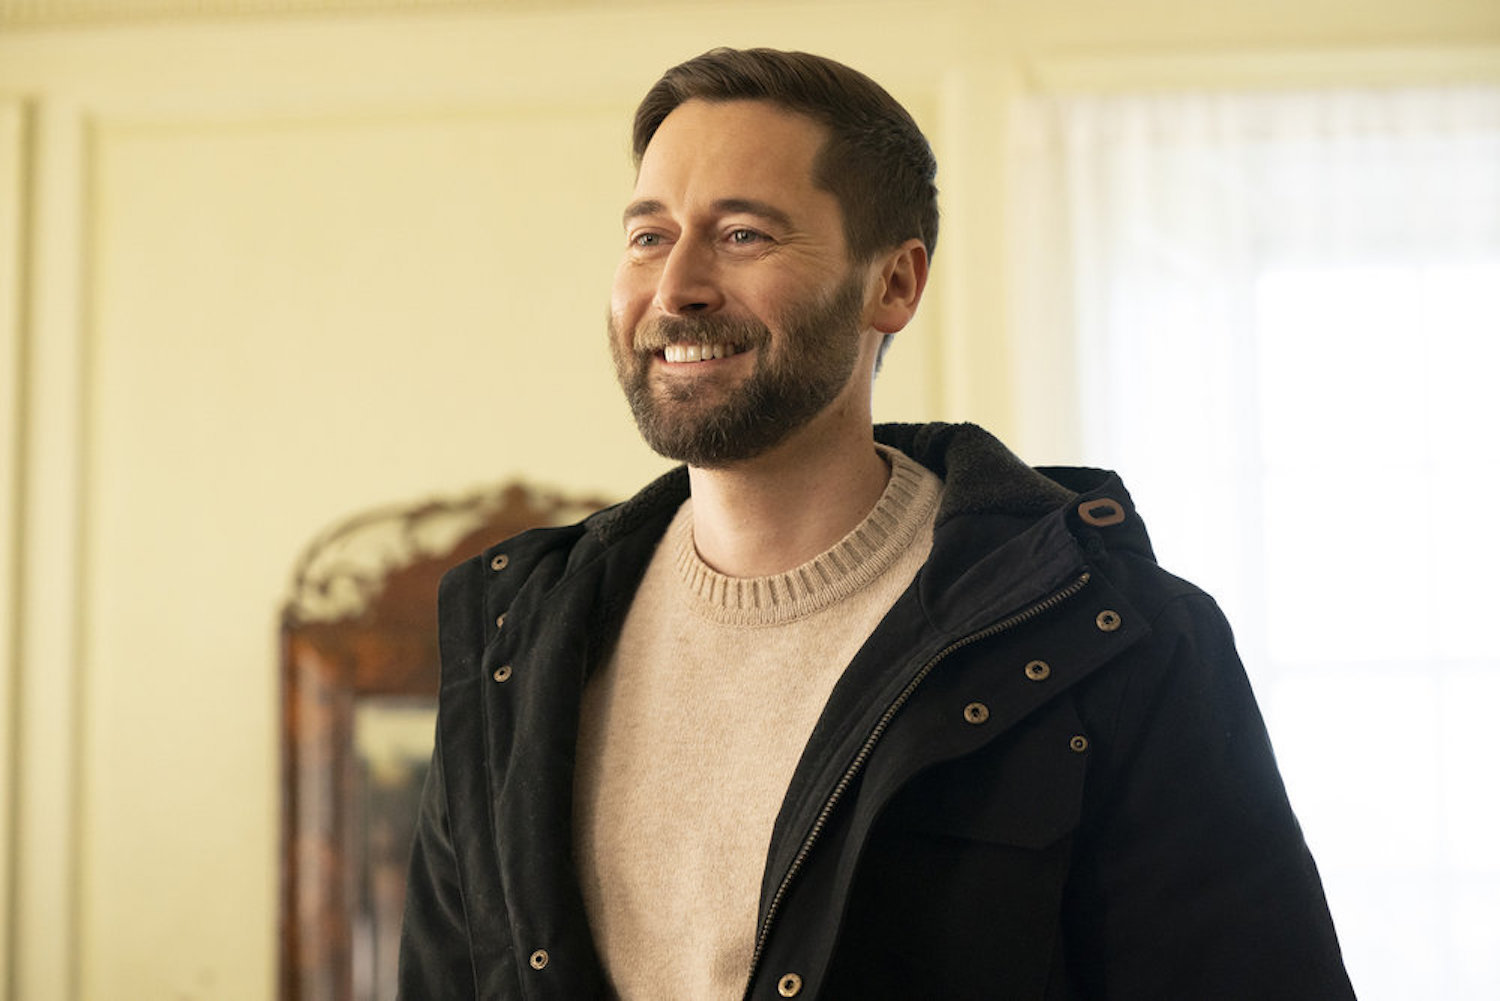 Ryan Eggold New Amsterdam Season 3 Episode 4 Max